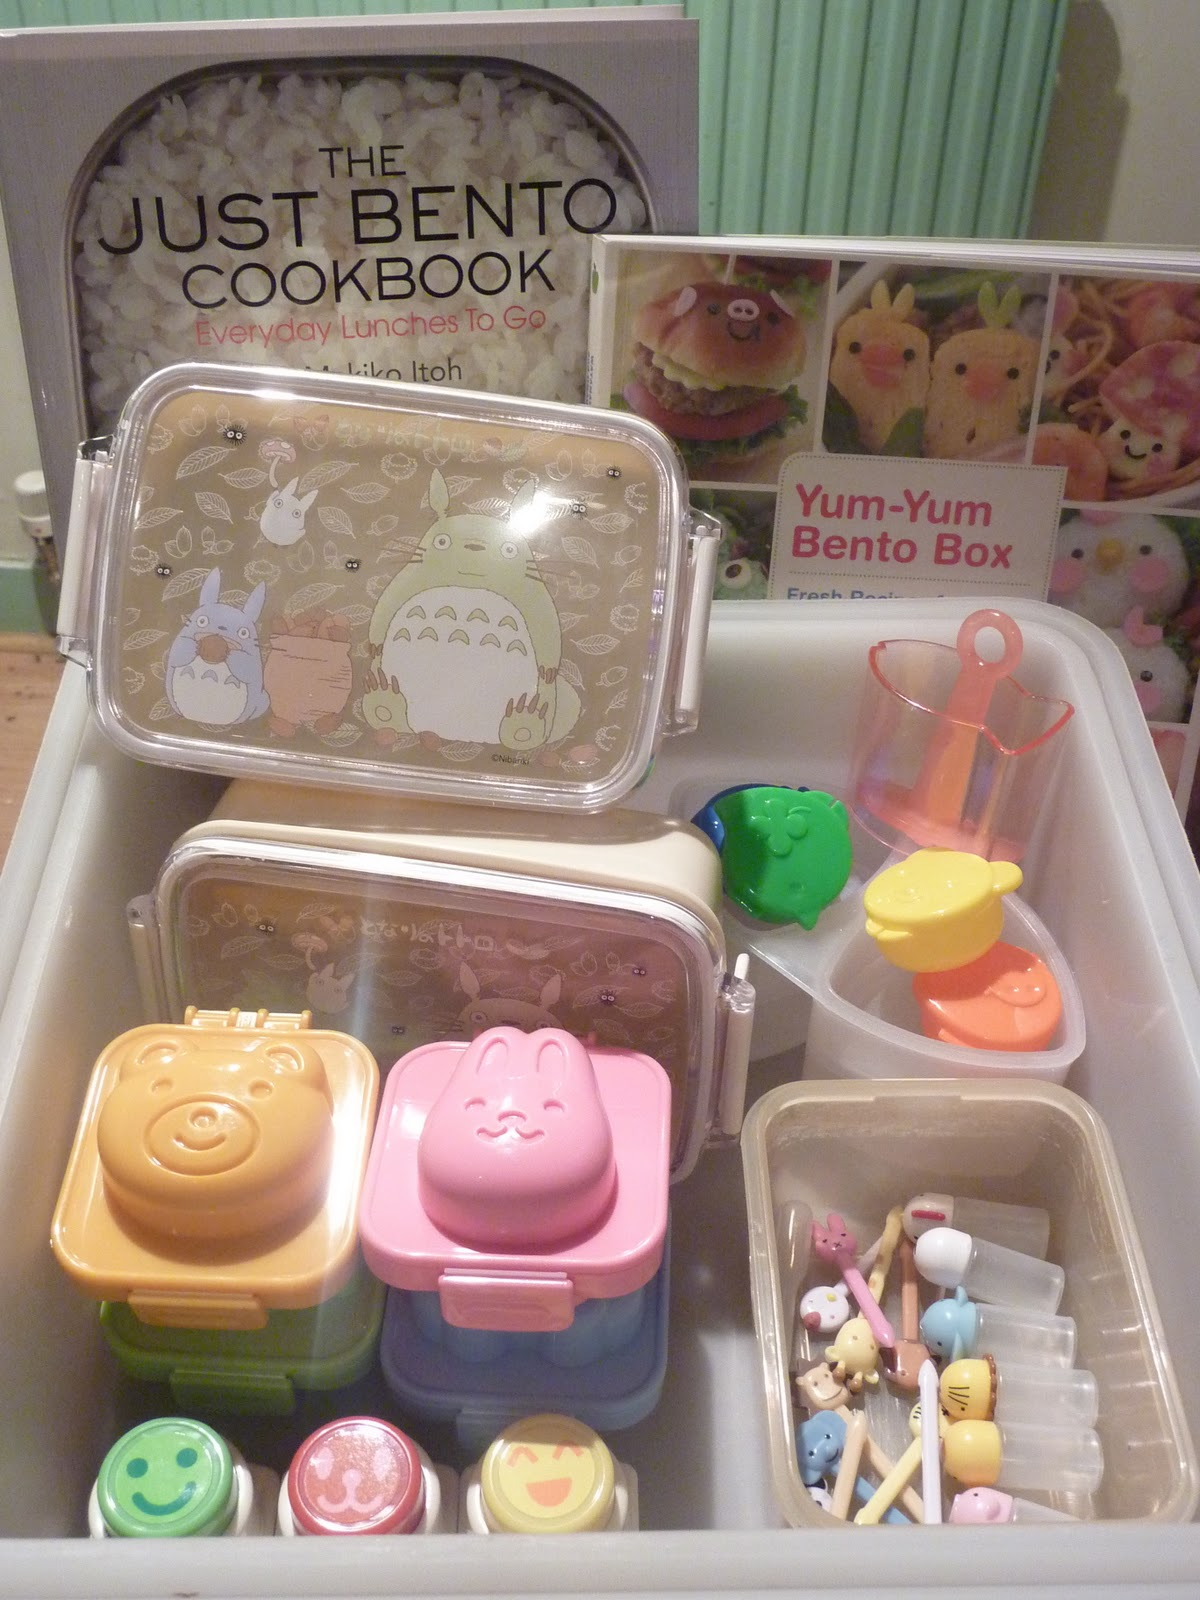 jlist bento lunch box dragon ball bento lunch box when i have kids pinterest 1000 images about. Black Bedroom Furniture Sets. Home Design Ideas